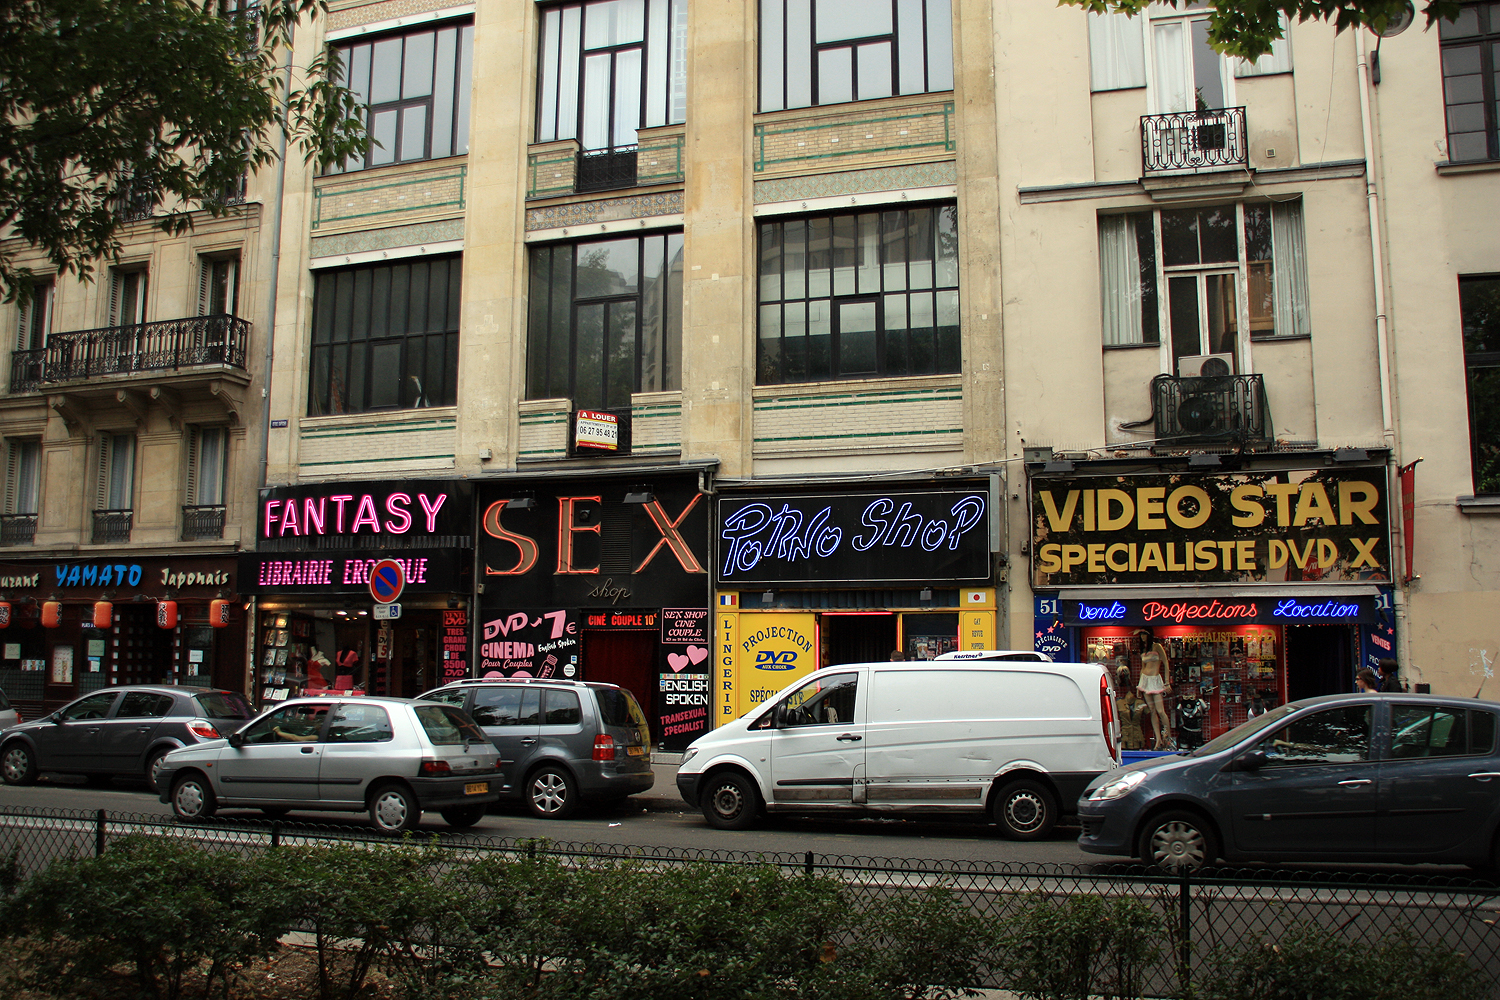 Vidéo porno video shop